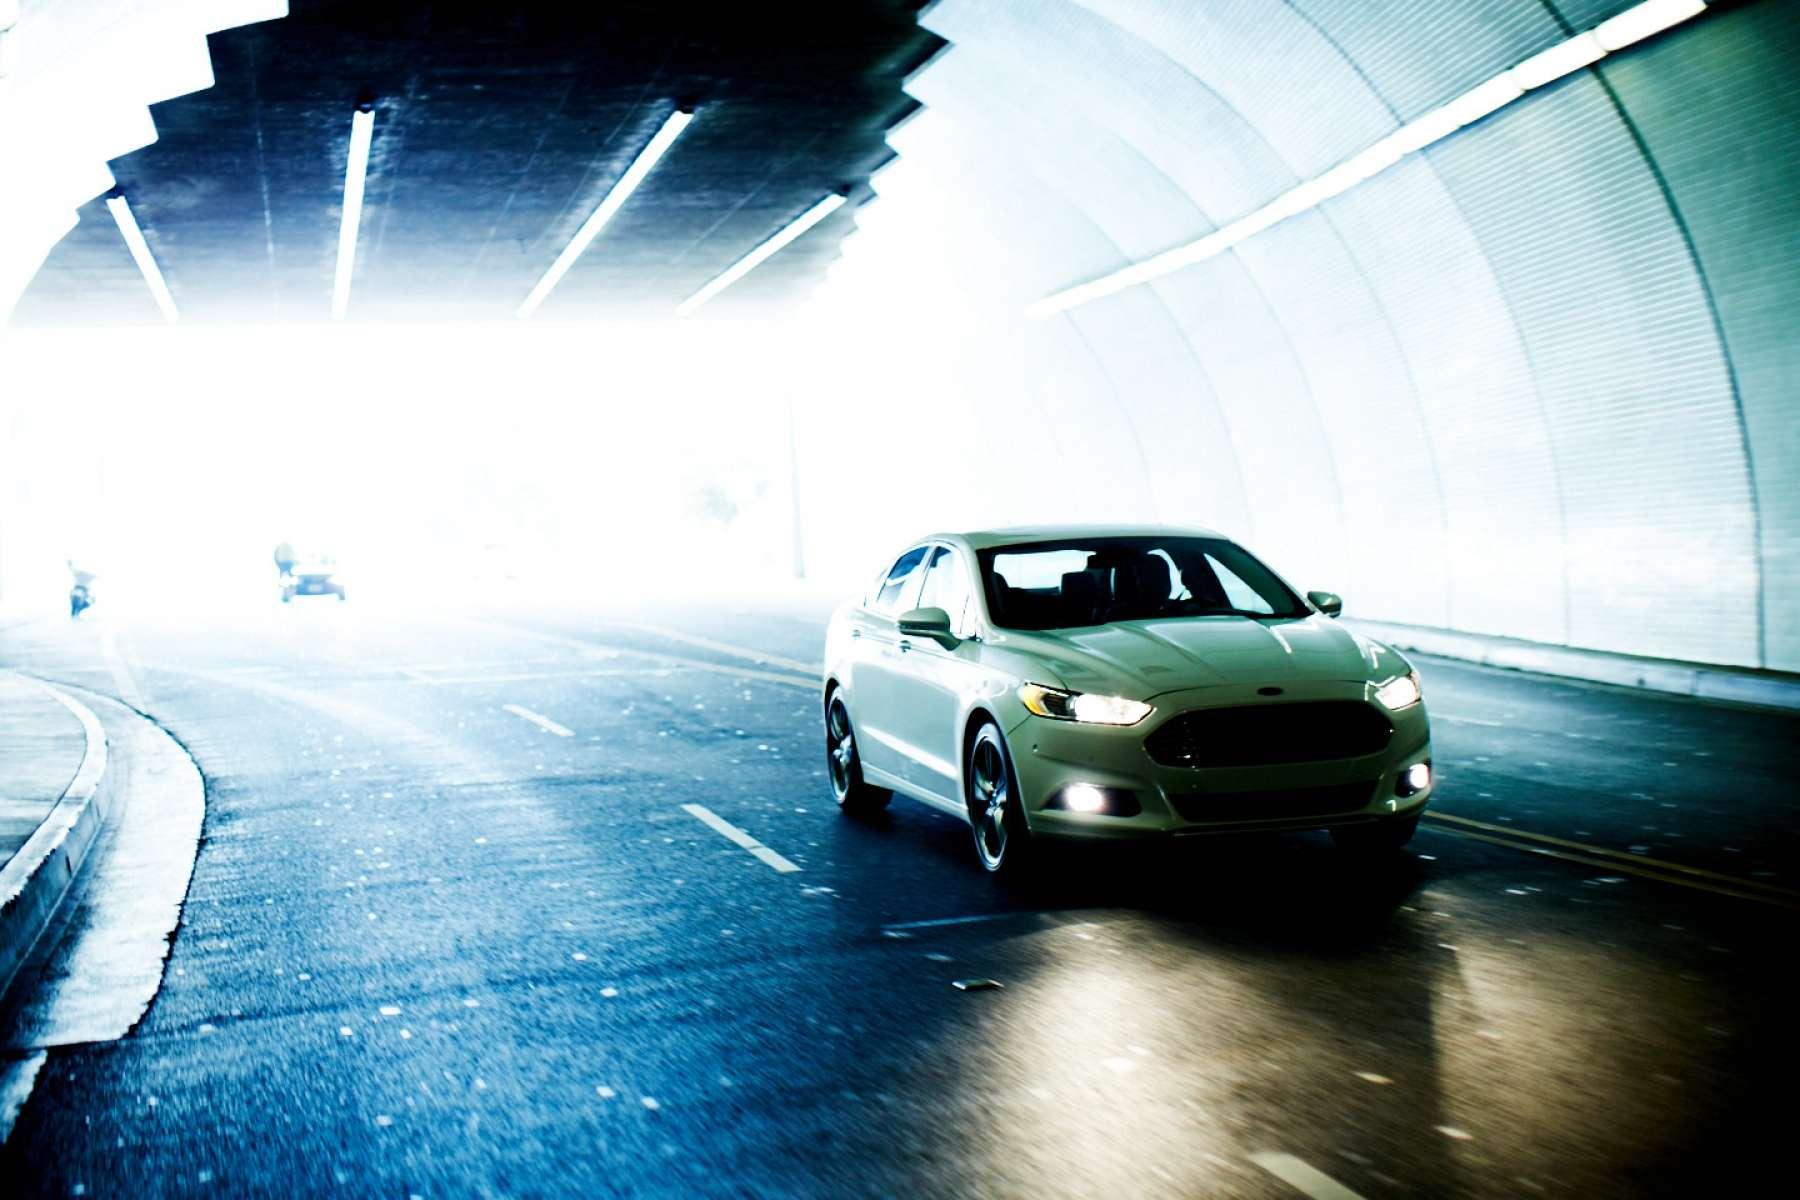 51f6861106bd8_Christian_Kozowyk_car_in_lit_tunnel